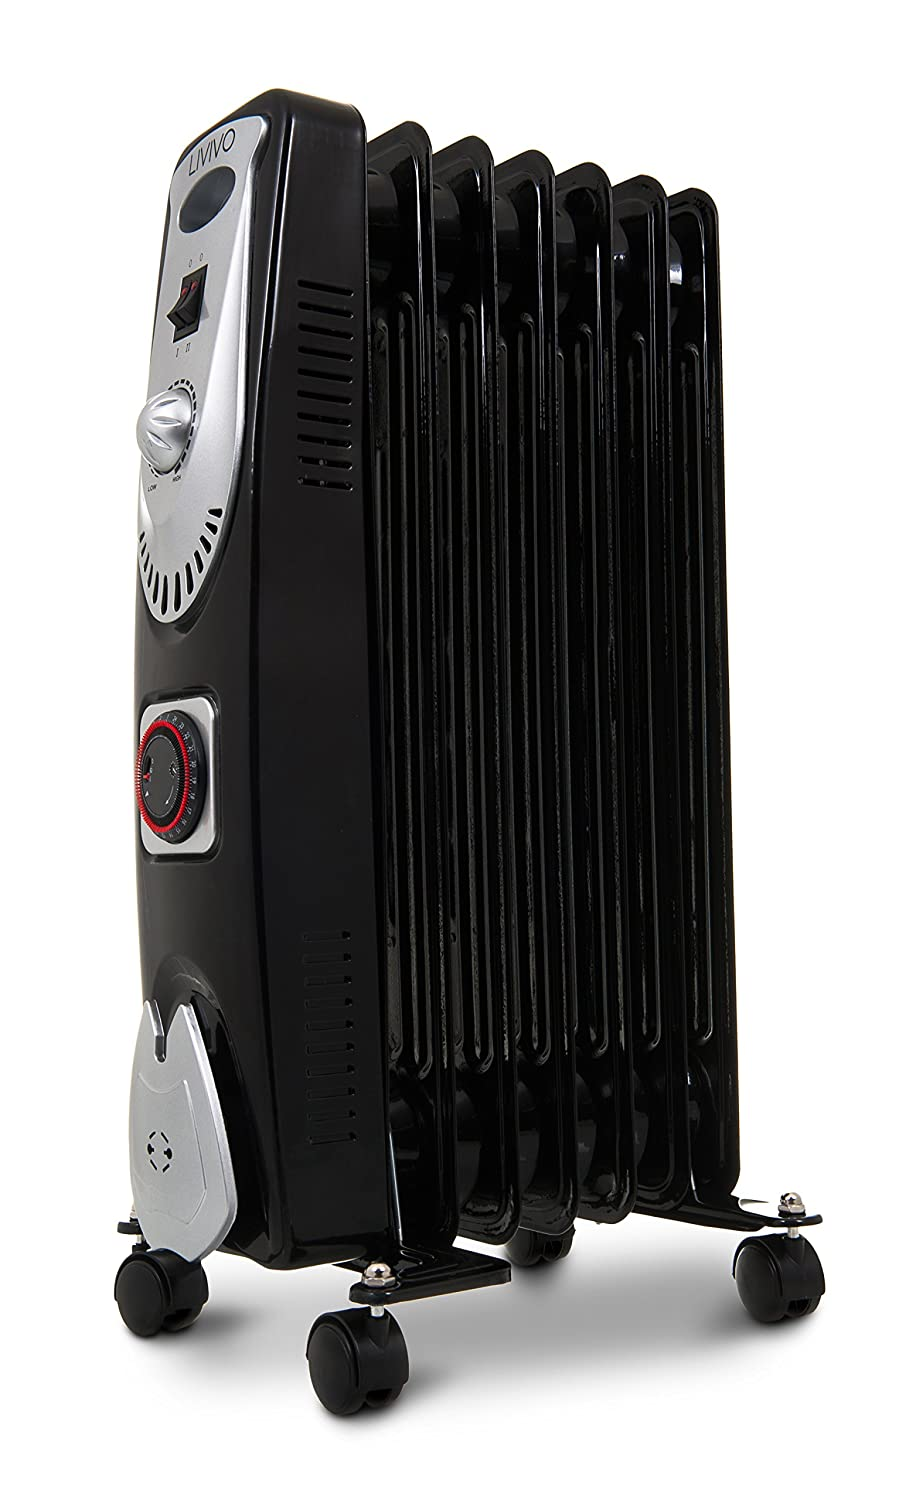 BDUK Portable Electric Black 7 Fin Oil Filled Radiator Heater with 3 Power Levels and Adjustable Temperature Control - Safety Cut Off, Tip-Over Switch and Over Heat Protection (1.5KW) Best Deals UK